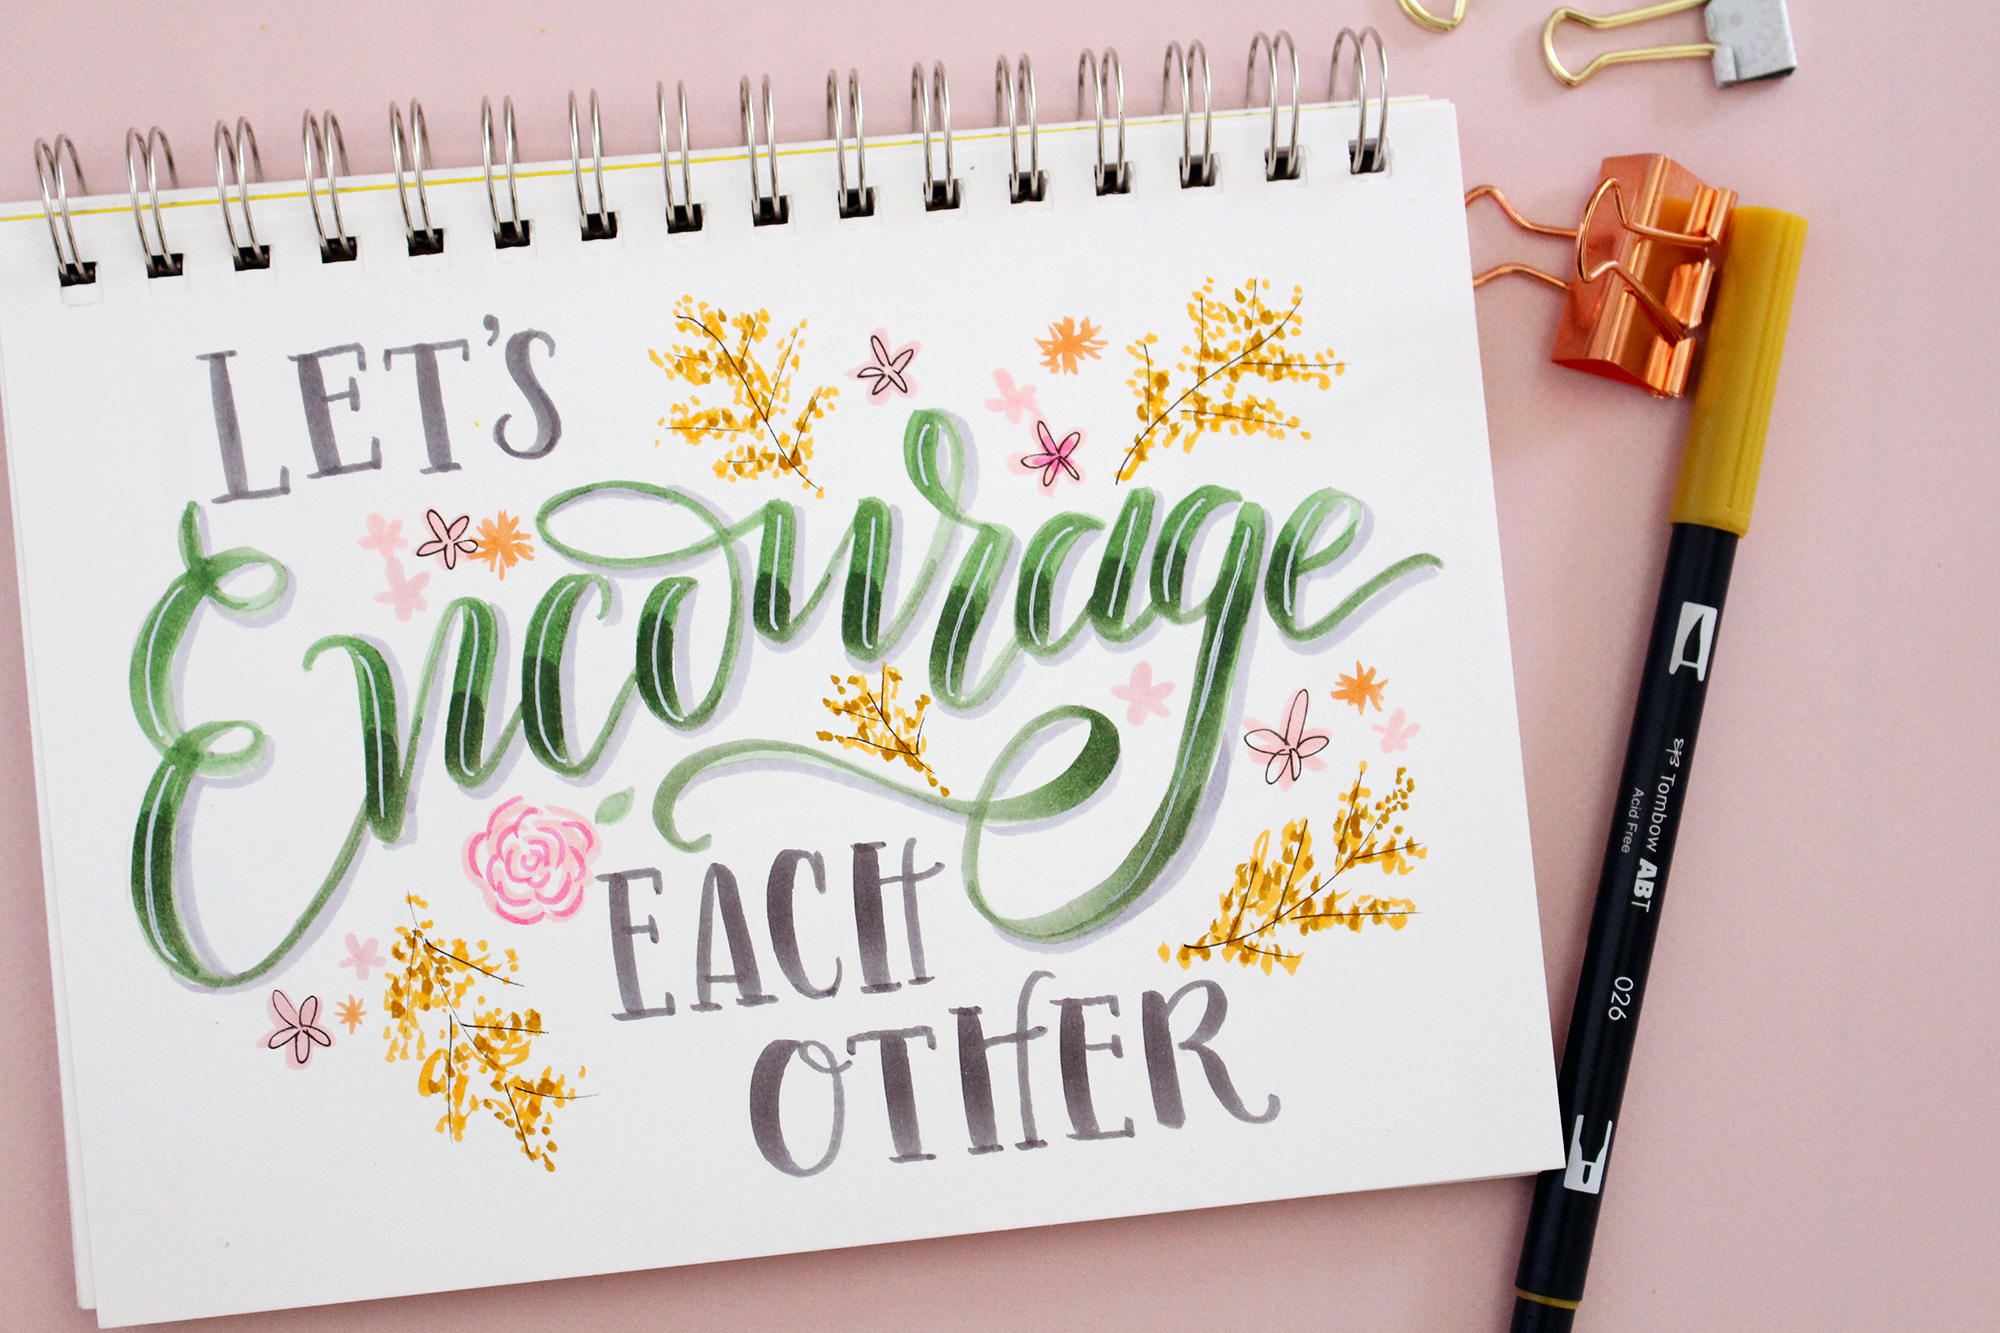 Encouragement is one of our core values at Lily & Val so we are sharing 5 simple ways to be an encouragement to those around you on Lily & Val Living